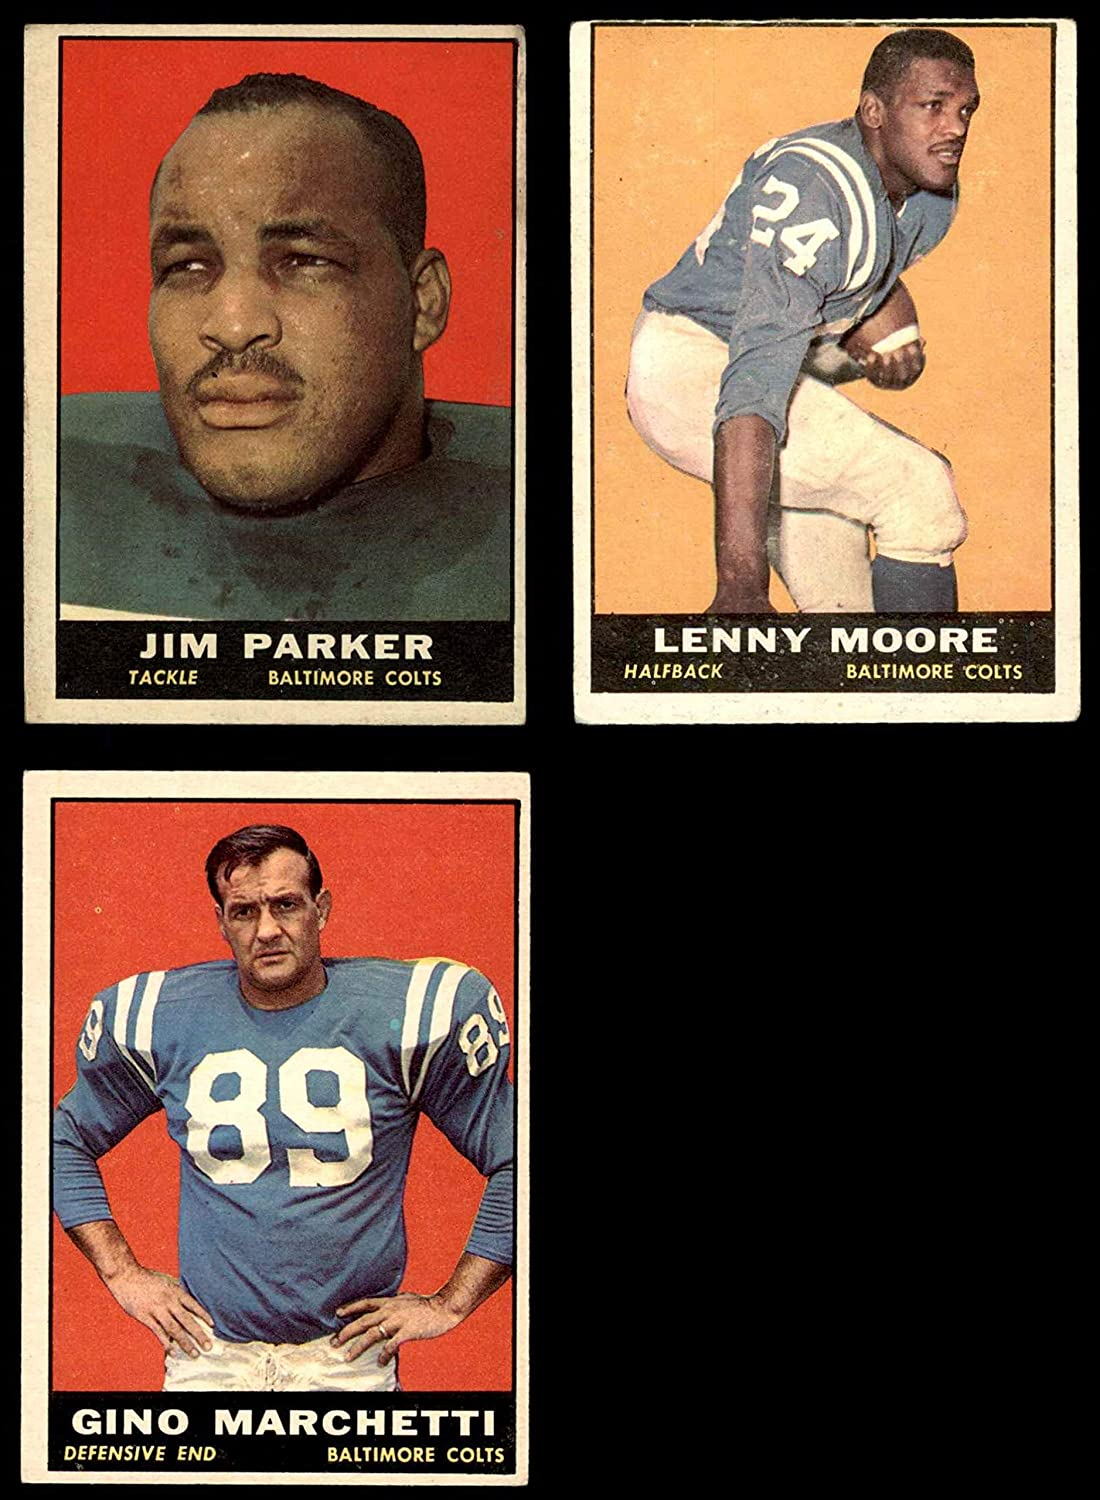 1961 Topps Baltimore Colts Team Set Baltimore Colts (Baseball Set) Dean's Cards 4 - VG/EX Colts 816xxQ8iPFLSL1500_